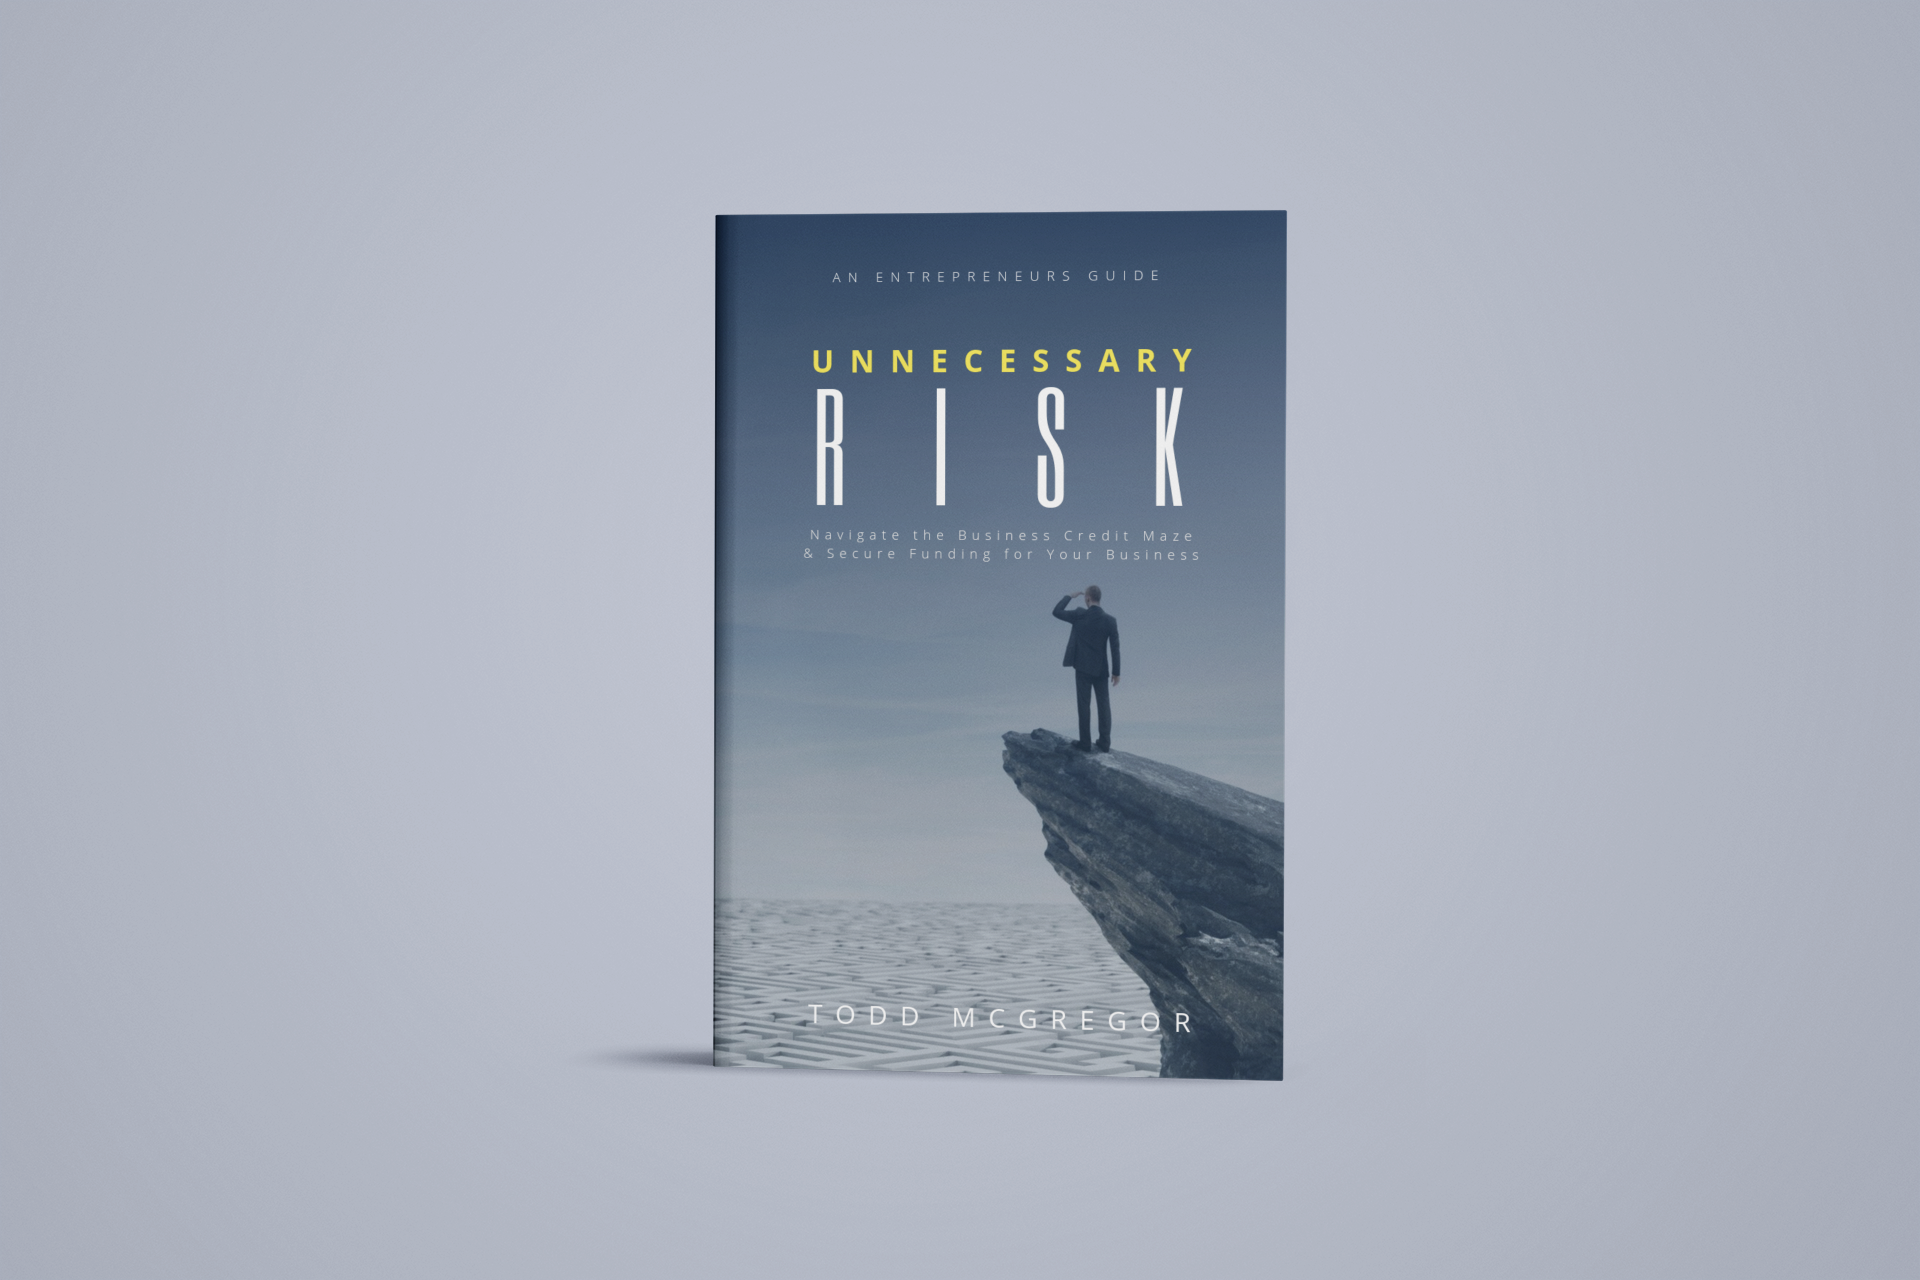 Unnecessary Risk Book - Business Credit Coaching and Business Broker Temecula CA Todd McGregor